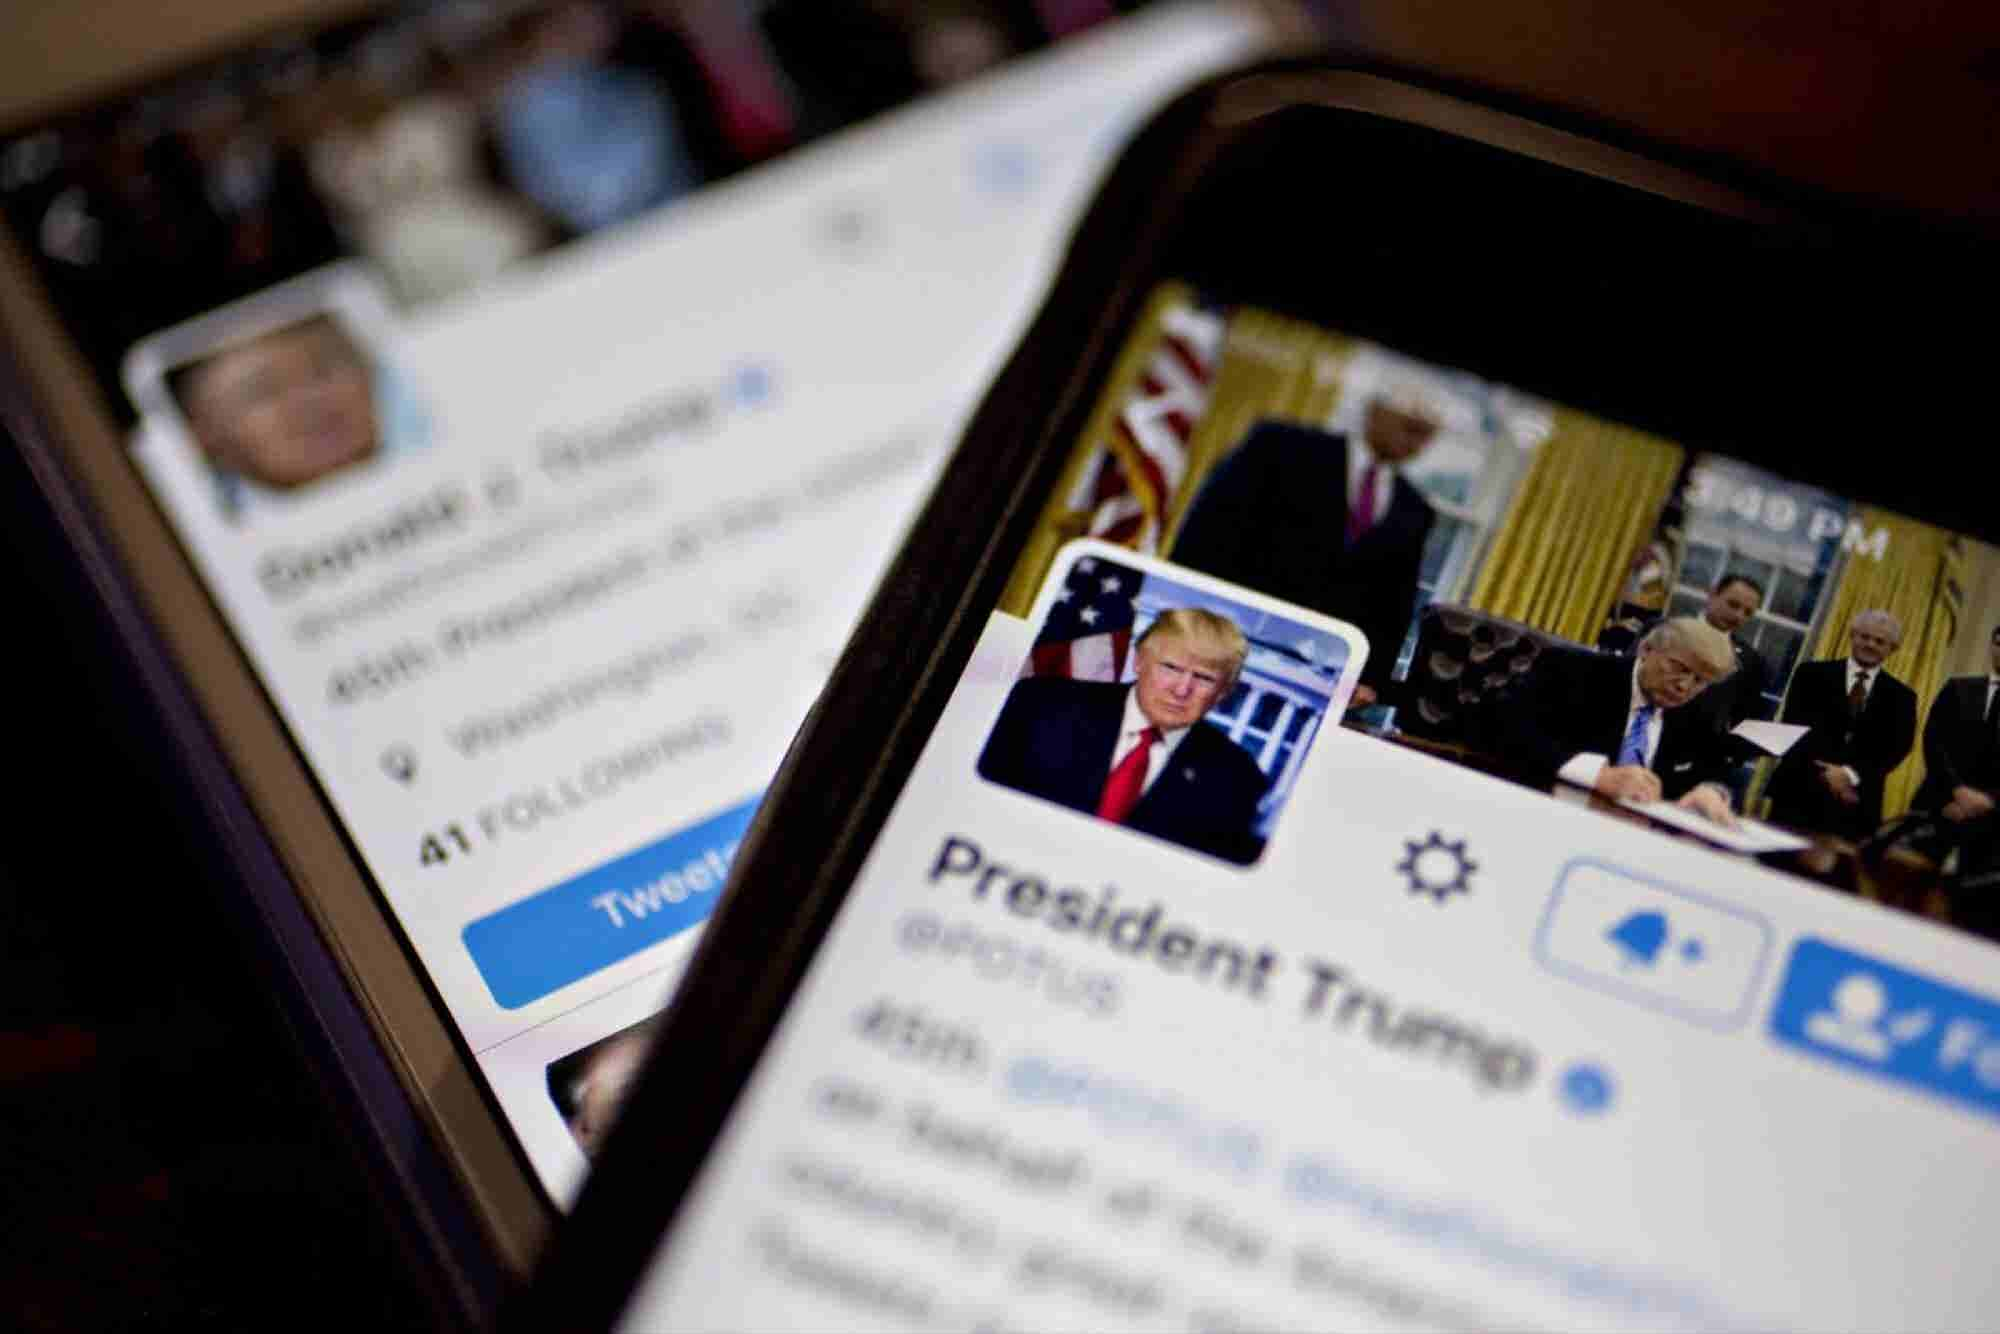 The Guy Who Shut Down Trump's Twitter Account Says it Was a Mistake